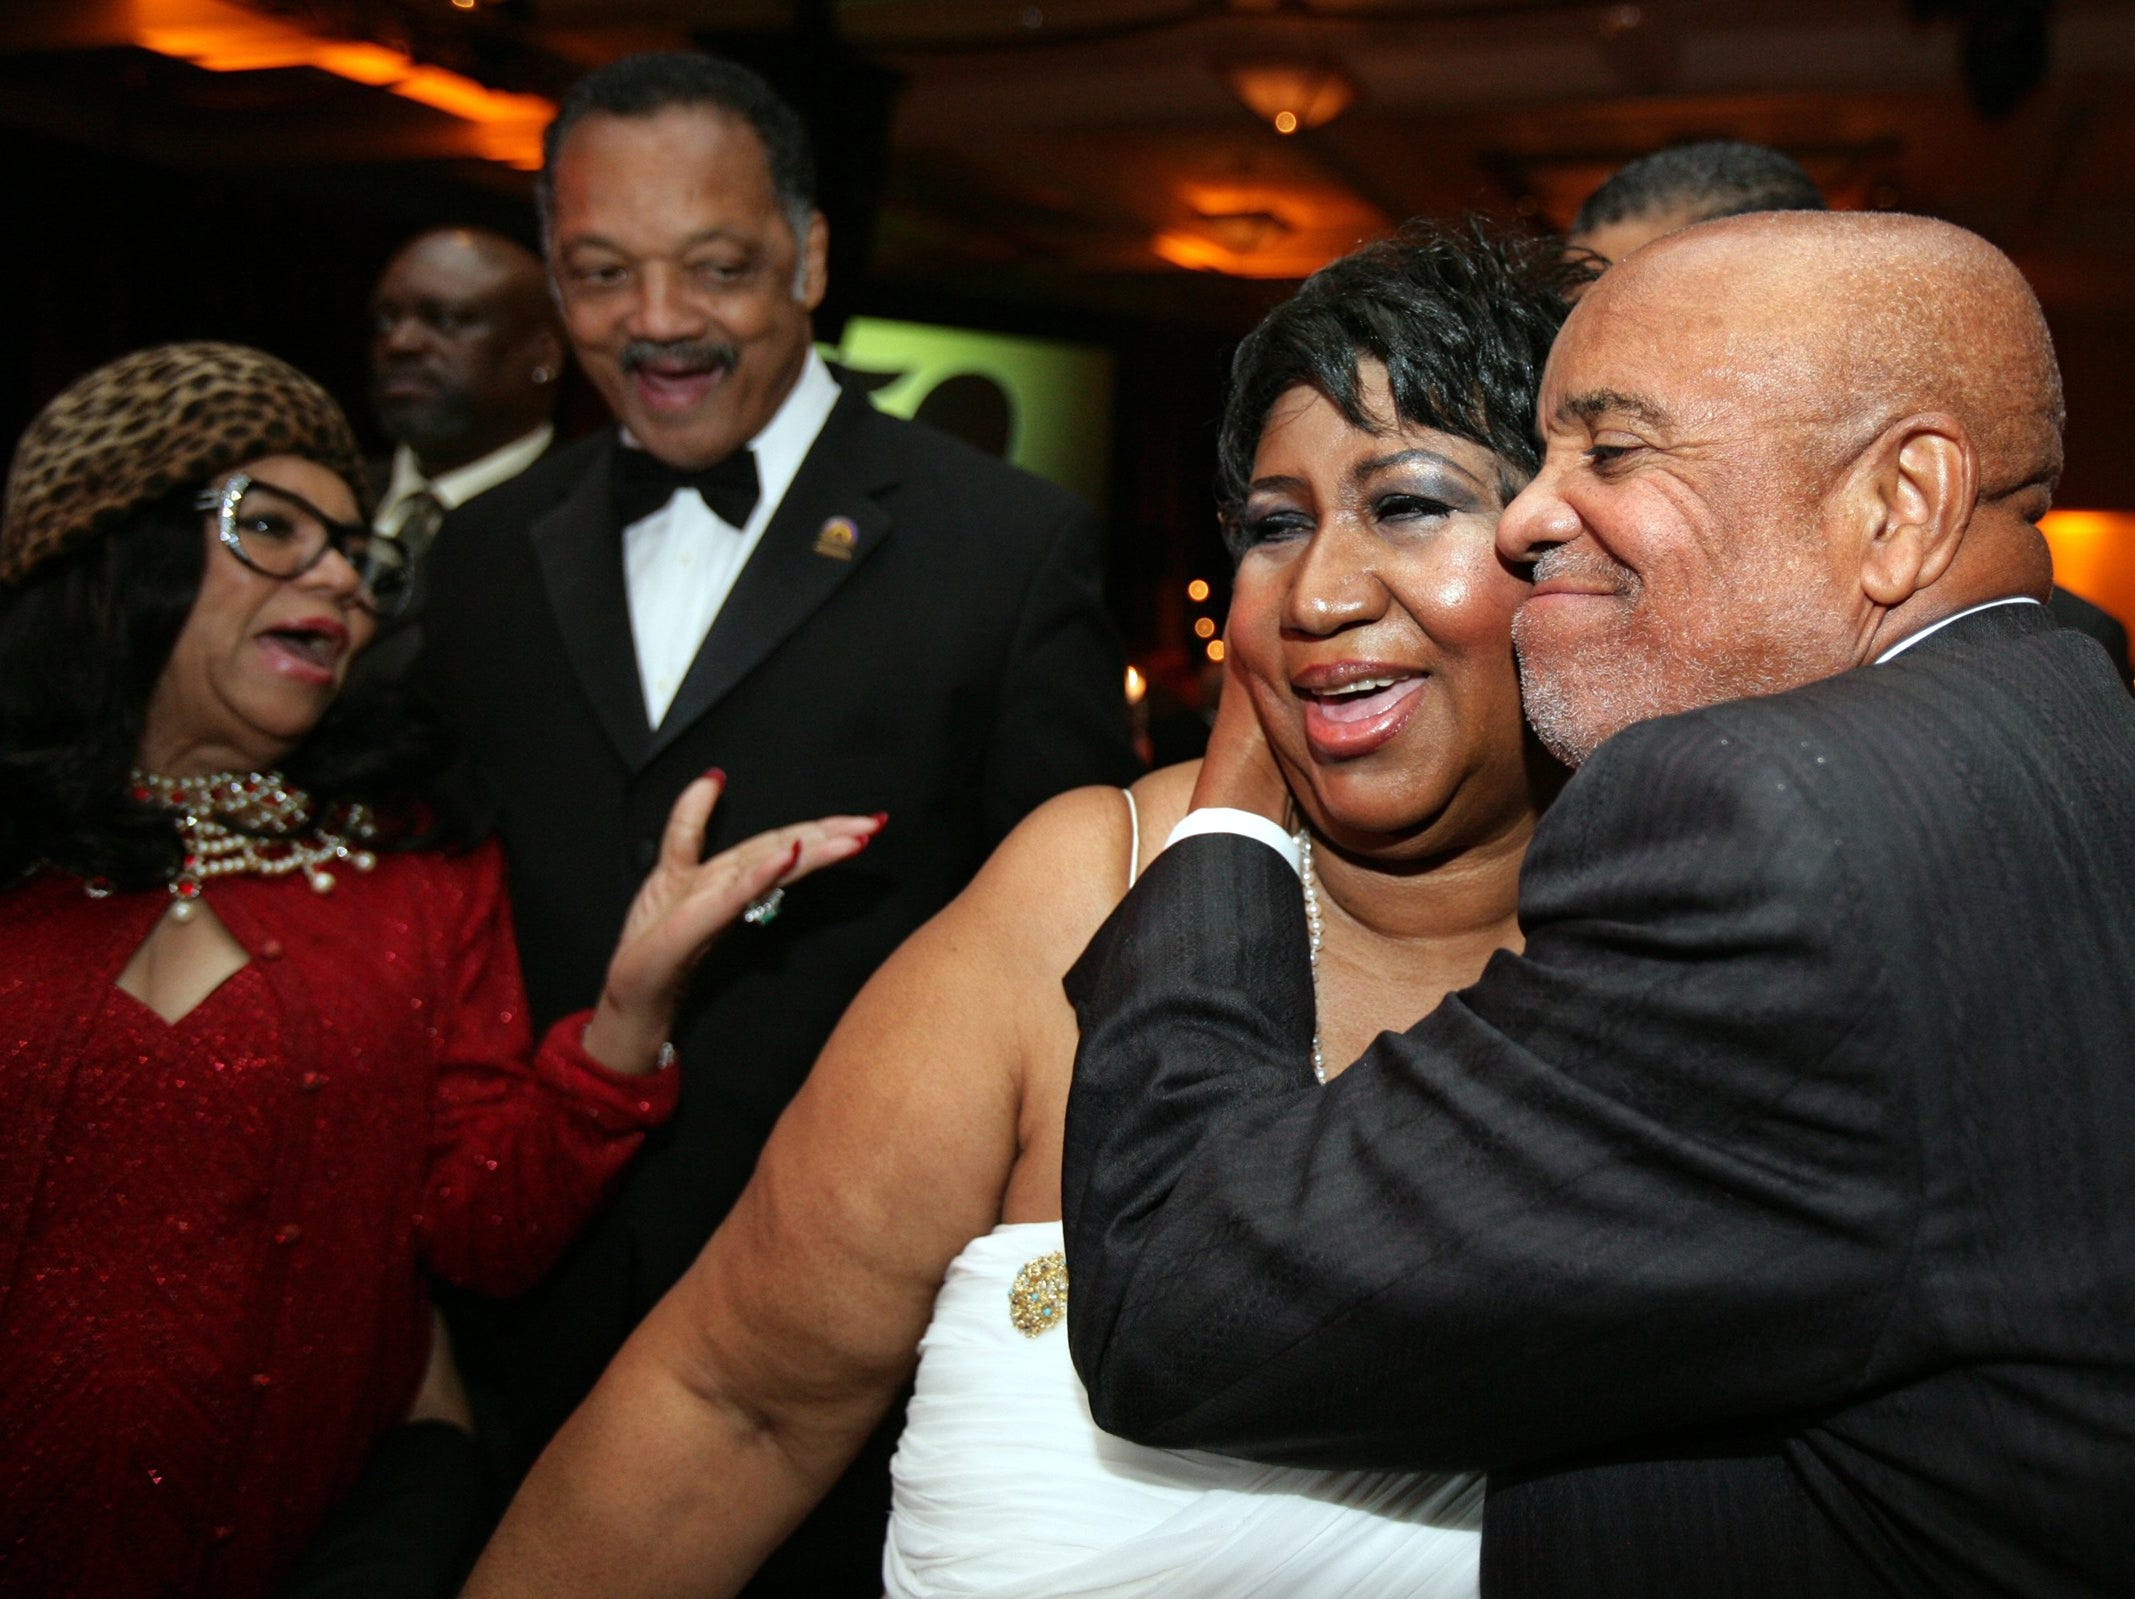 November 2009; Detroit, MI, USA; Berry Gordy hugs Aretha Franklin while Jesse Jackson and a guest looks on at the Motown 50 Golden Gala Live it Again Weekend at the Marriott in the Renaissance Center in Detroit.   Mandatory Credit: Kimberly P. Mitchell /Detroit Free Press via USA TODAY NETWORK ORIG FILE ID:  20180812_ajw_usa_058.jpg